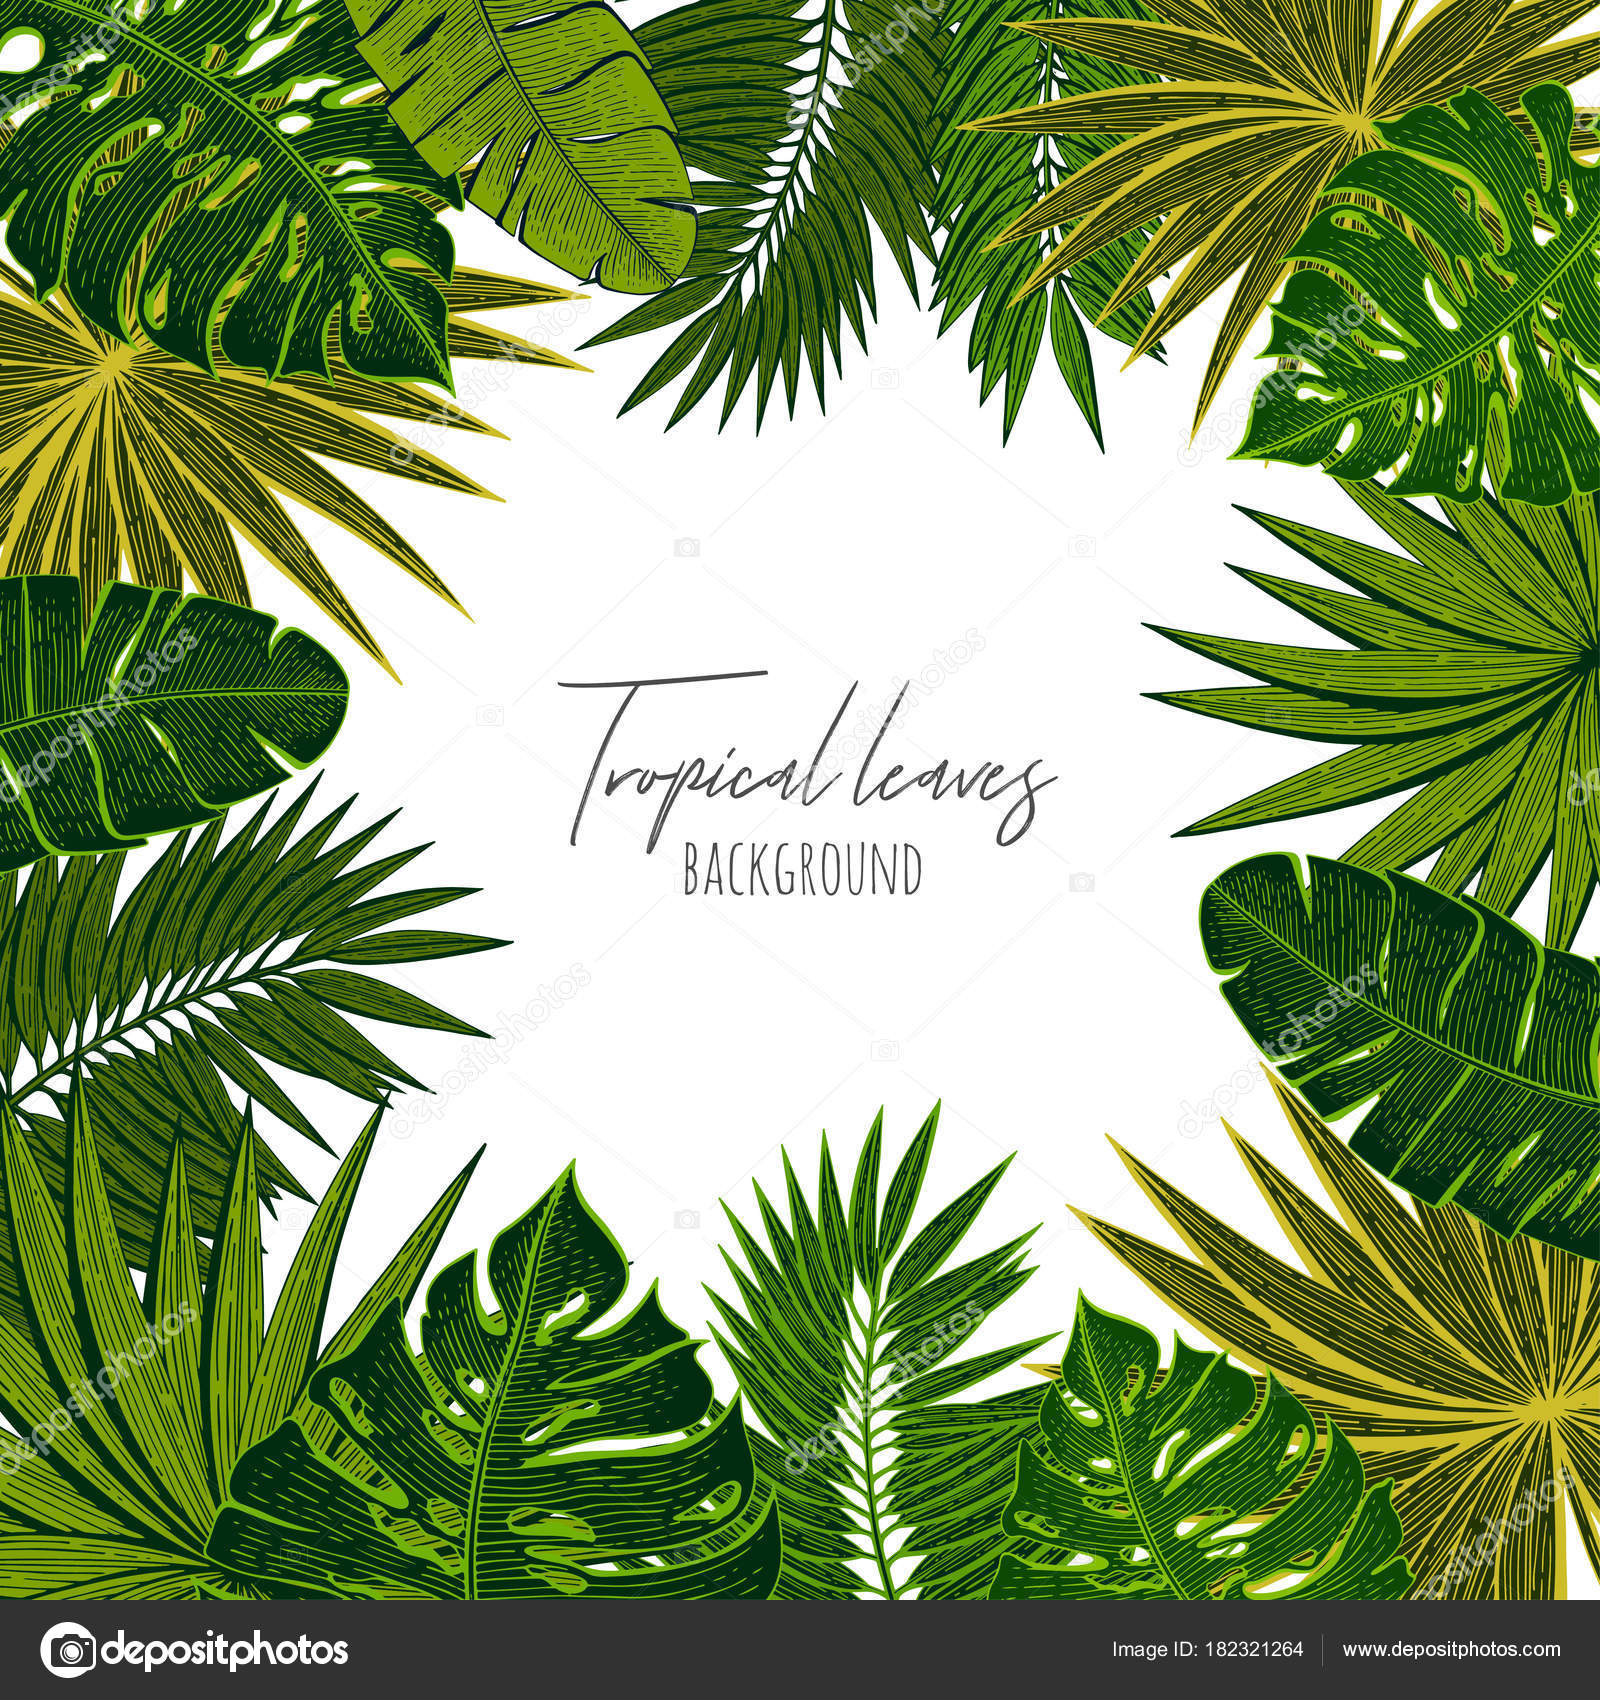 Green Floral Frame With Tropical Leaves Botanical Design Template For Wedding Invitations Greeting Cards Postcards Web Design Social Media Labels Packaging Design Frame For Quotes Stock Vector C Totamilow 182321264 Calligraphy graphic design style slogan for shop, promotion, motivation, poster, card, decoration, sticker. https depositphotos com 182321264 stock illustration green floral frame with tropical html